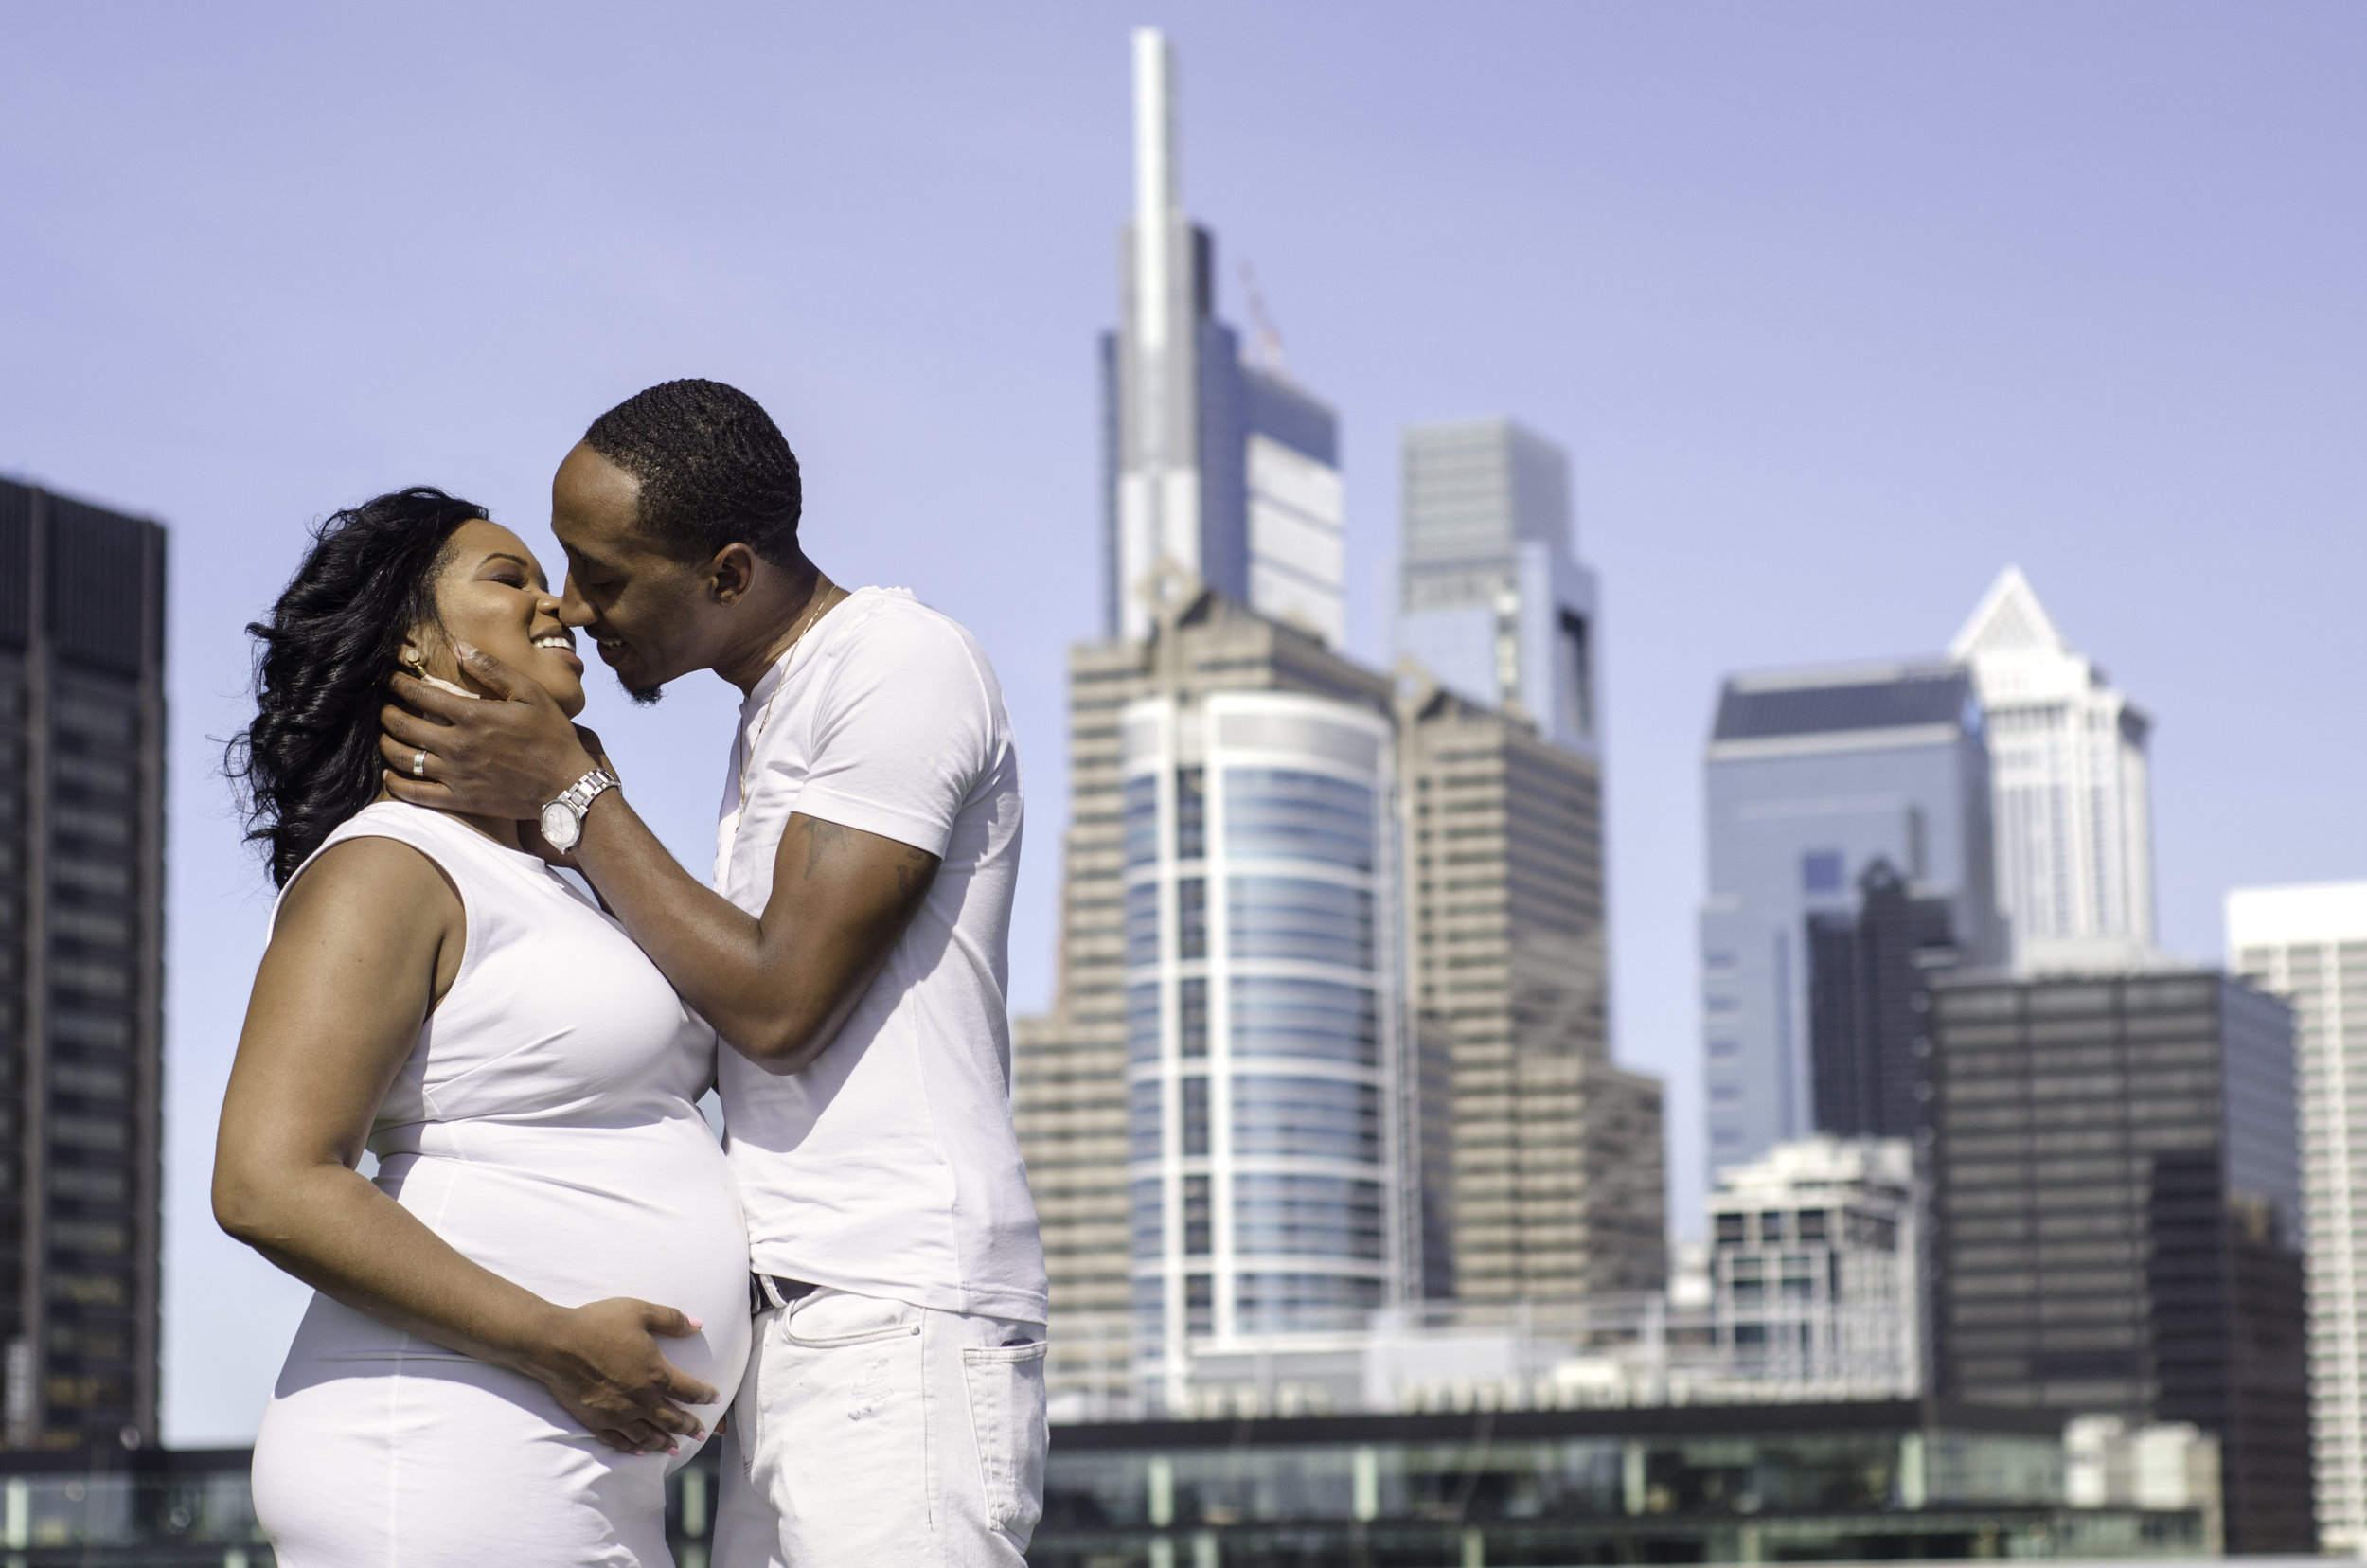 Philly maternity photography